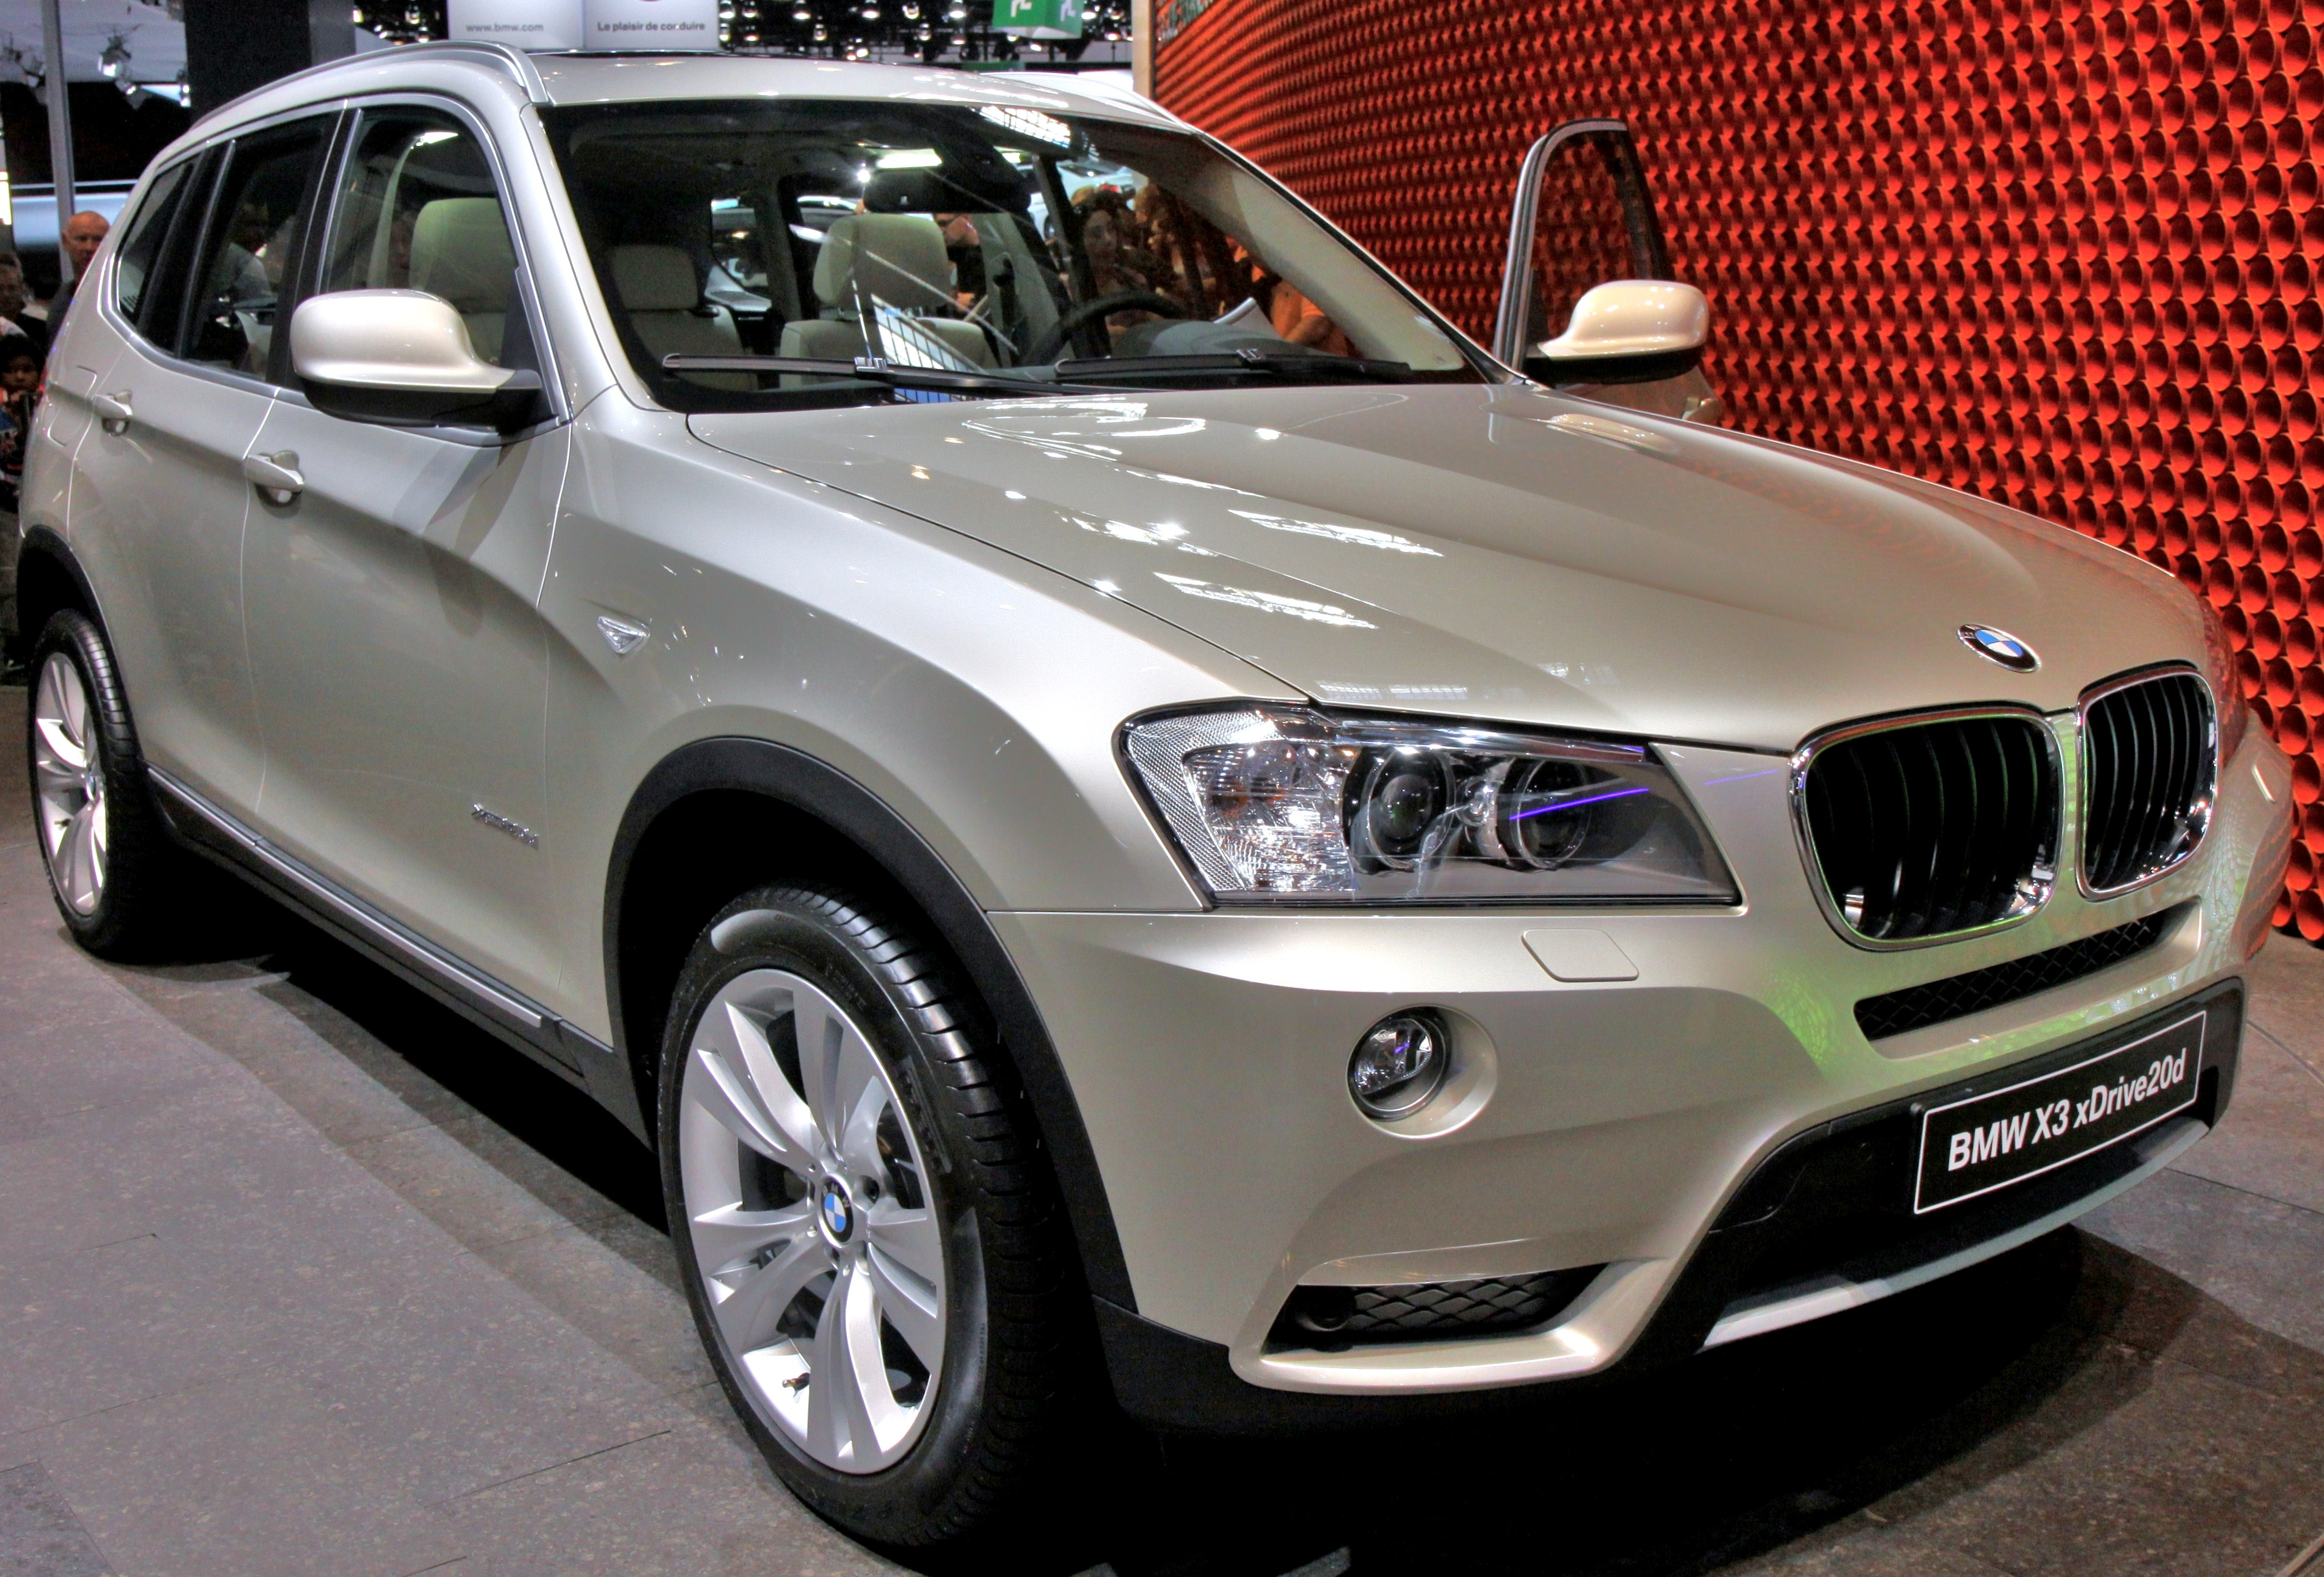 file paris mondial de l 39 automobile 2010 bmw x3 001 jpg wikipedia. Black Bedroom Furniture Sets. Home Design Ideas